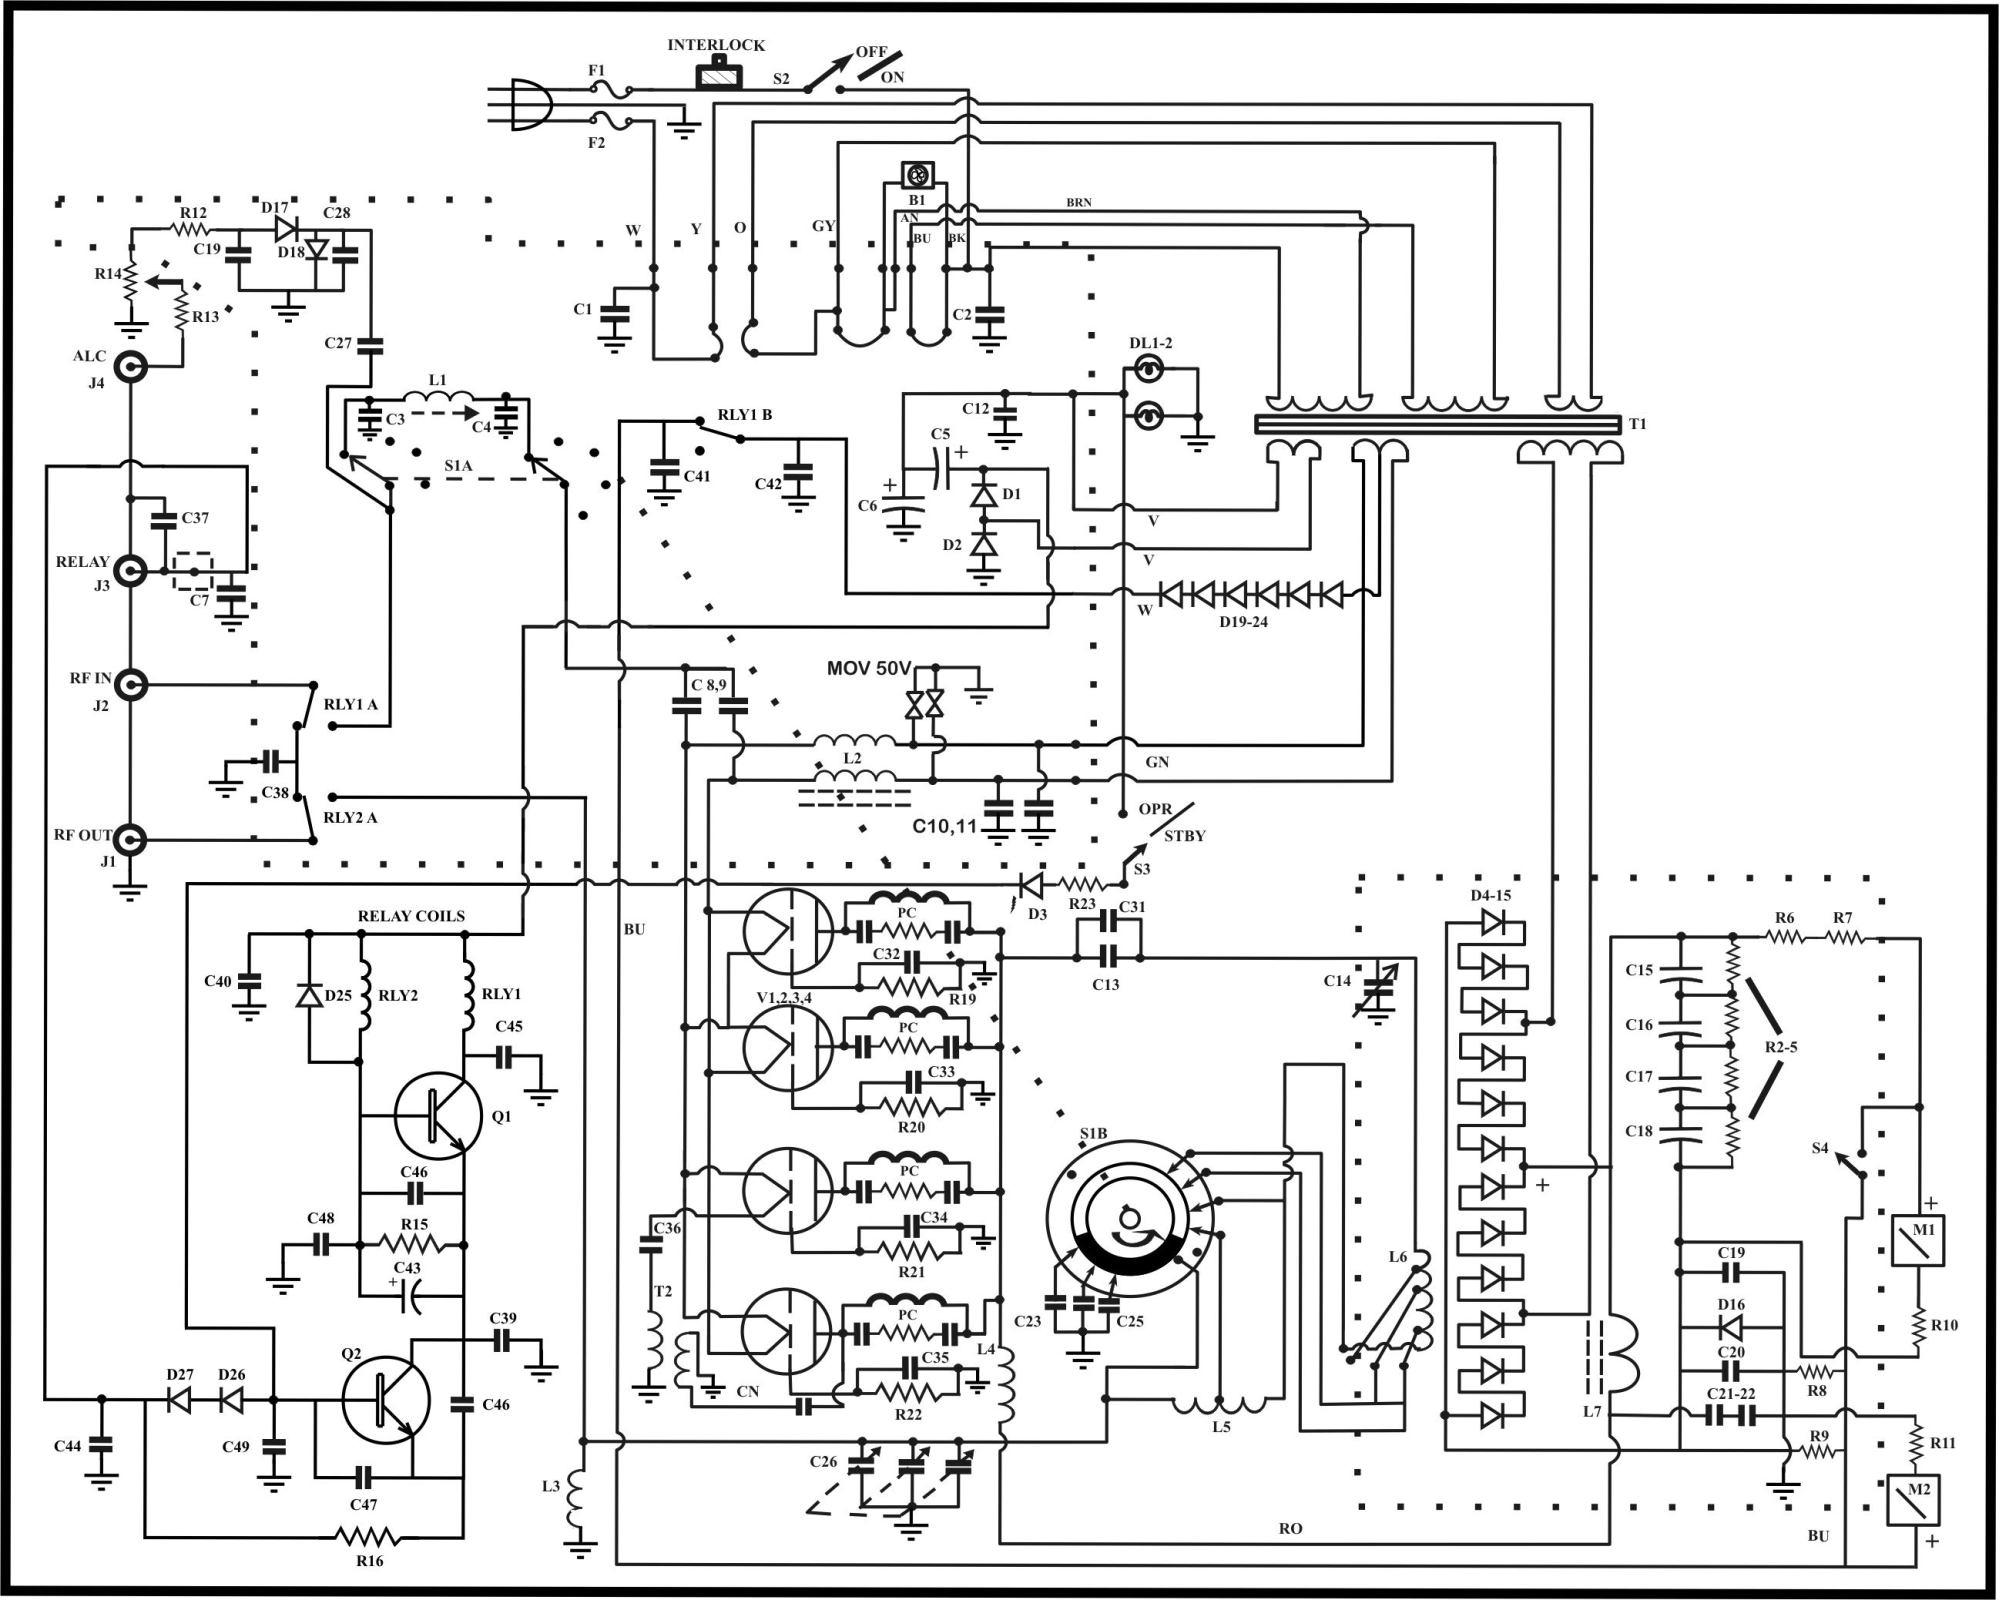 hight resolution of al811h schematic latest revision modifications